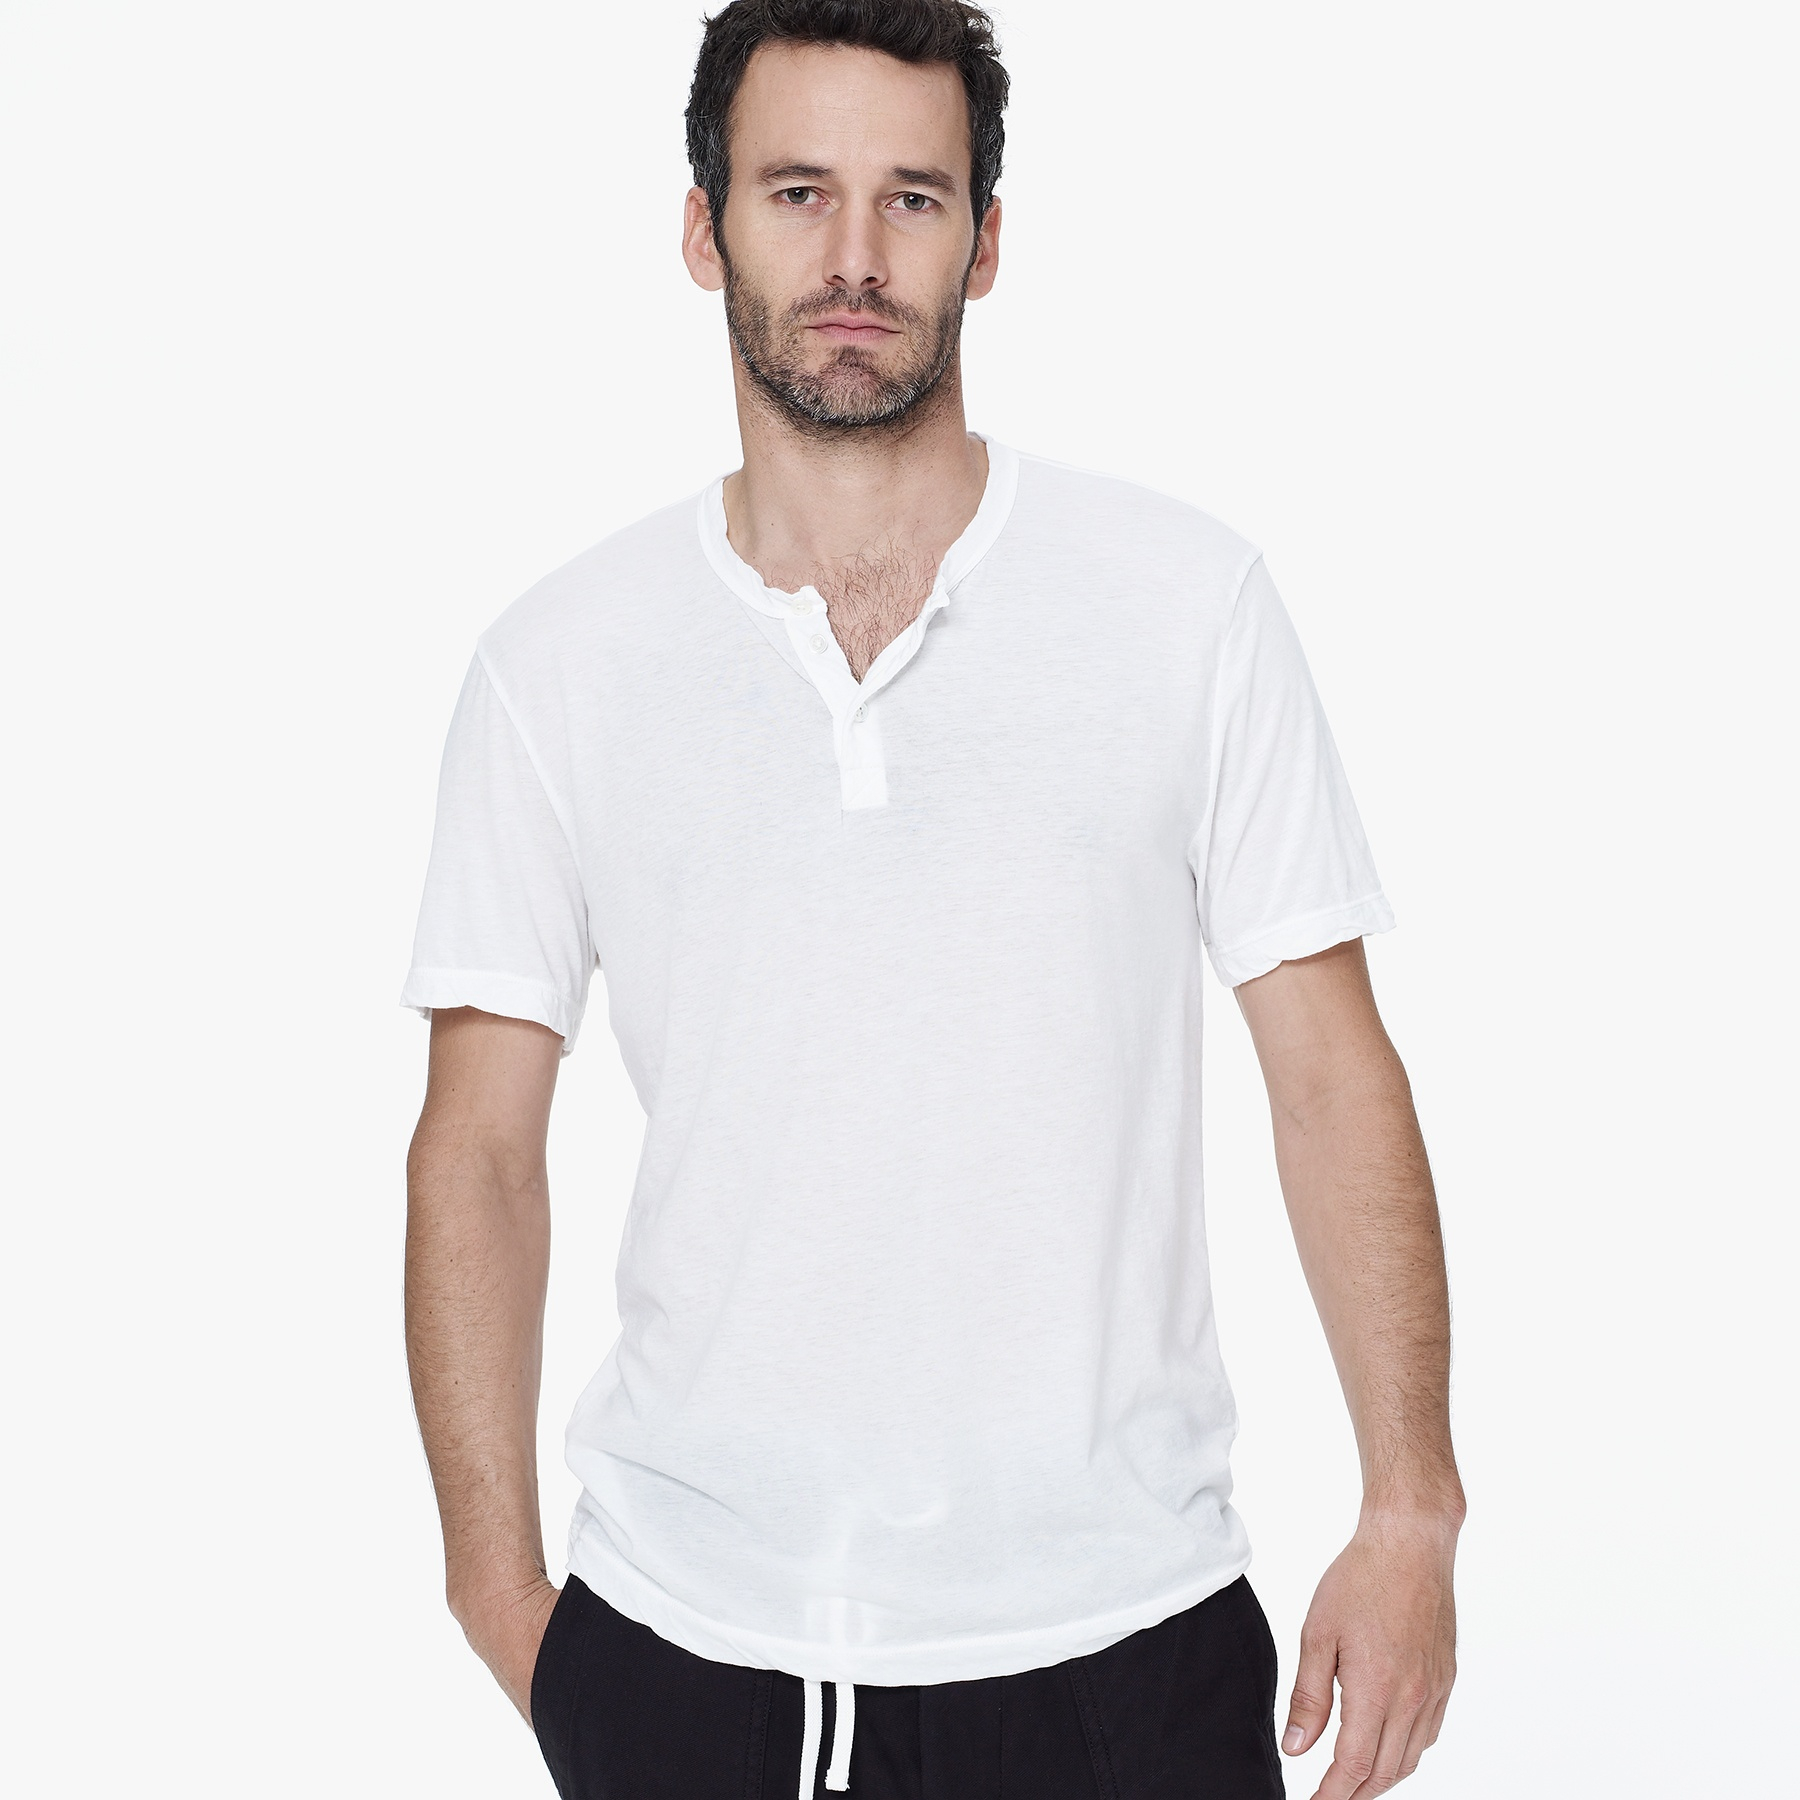 James perse cationic dyed melange henley in white for men for James perse henley shirt